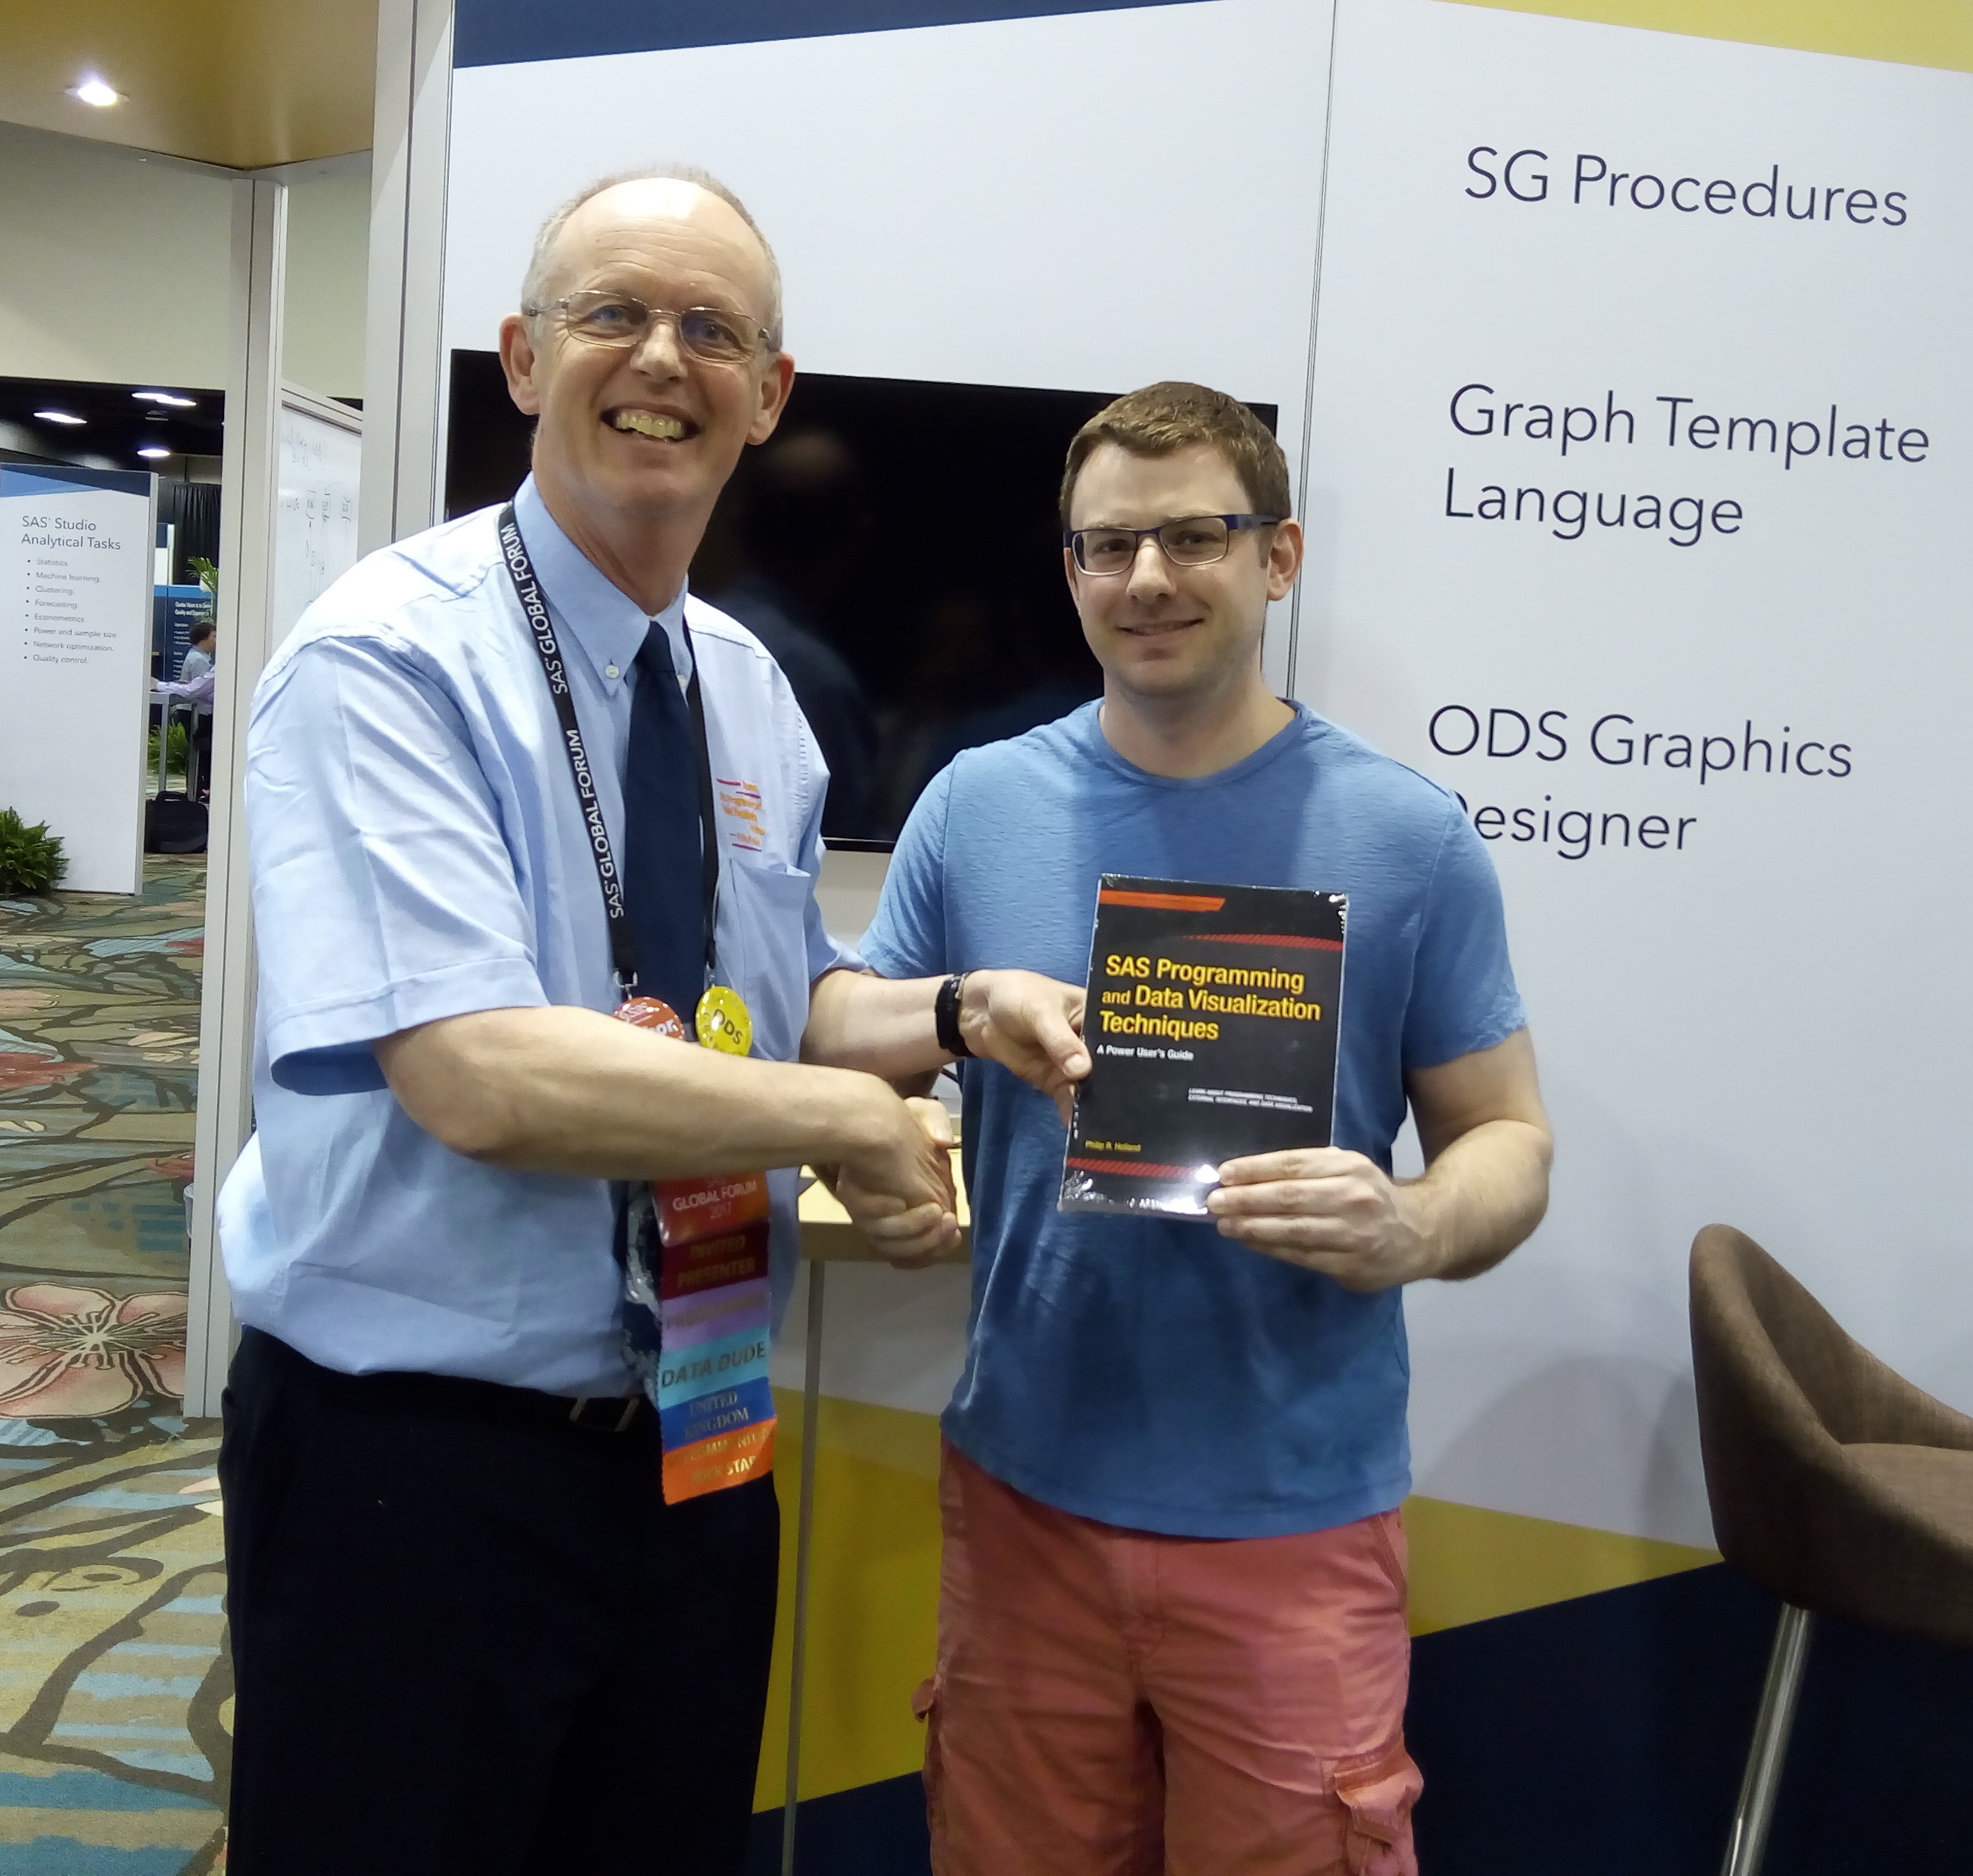 Matthew Hoolsema won a copy of my book in Orlando